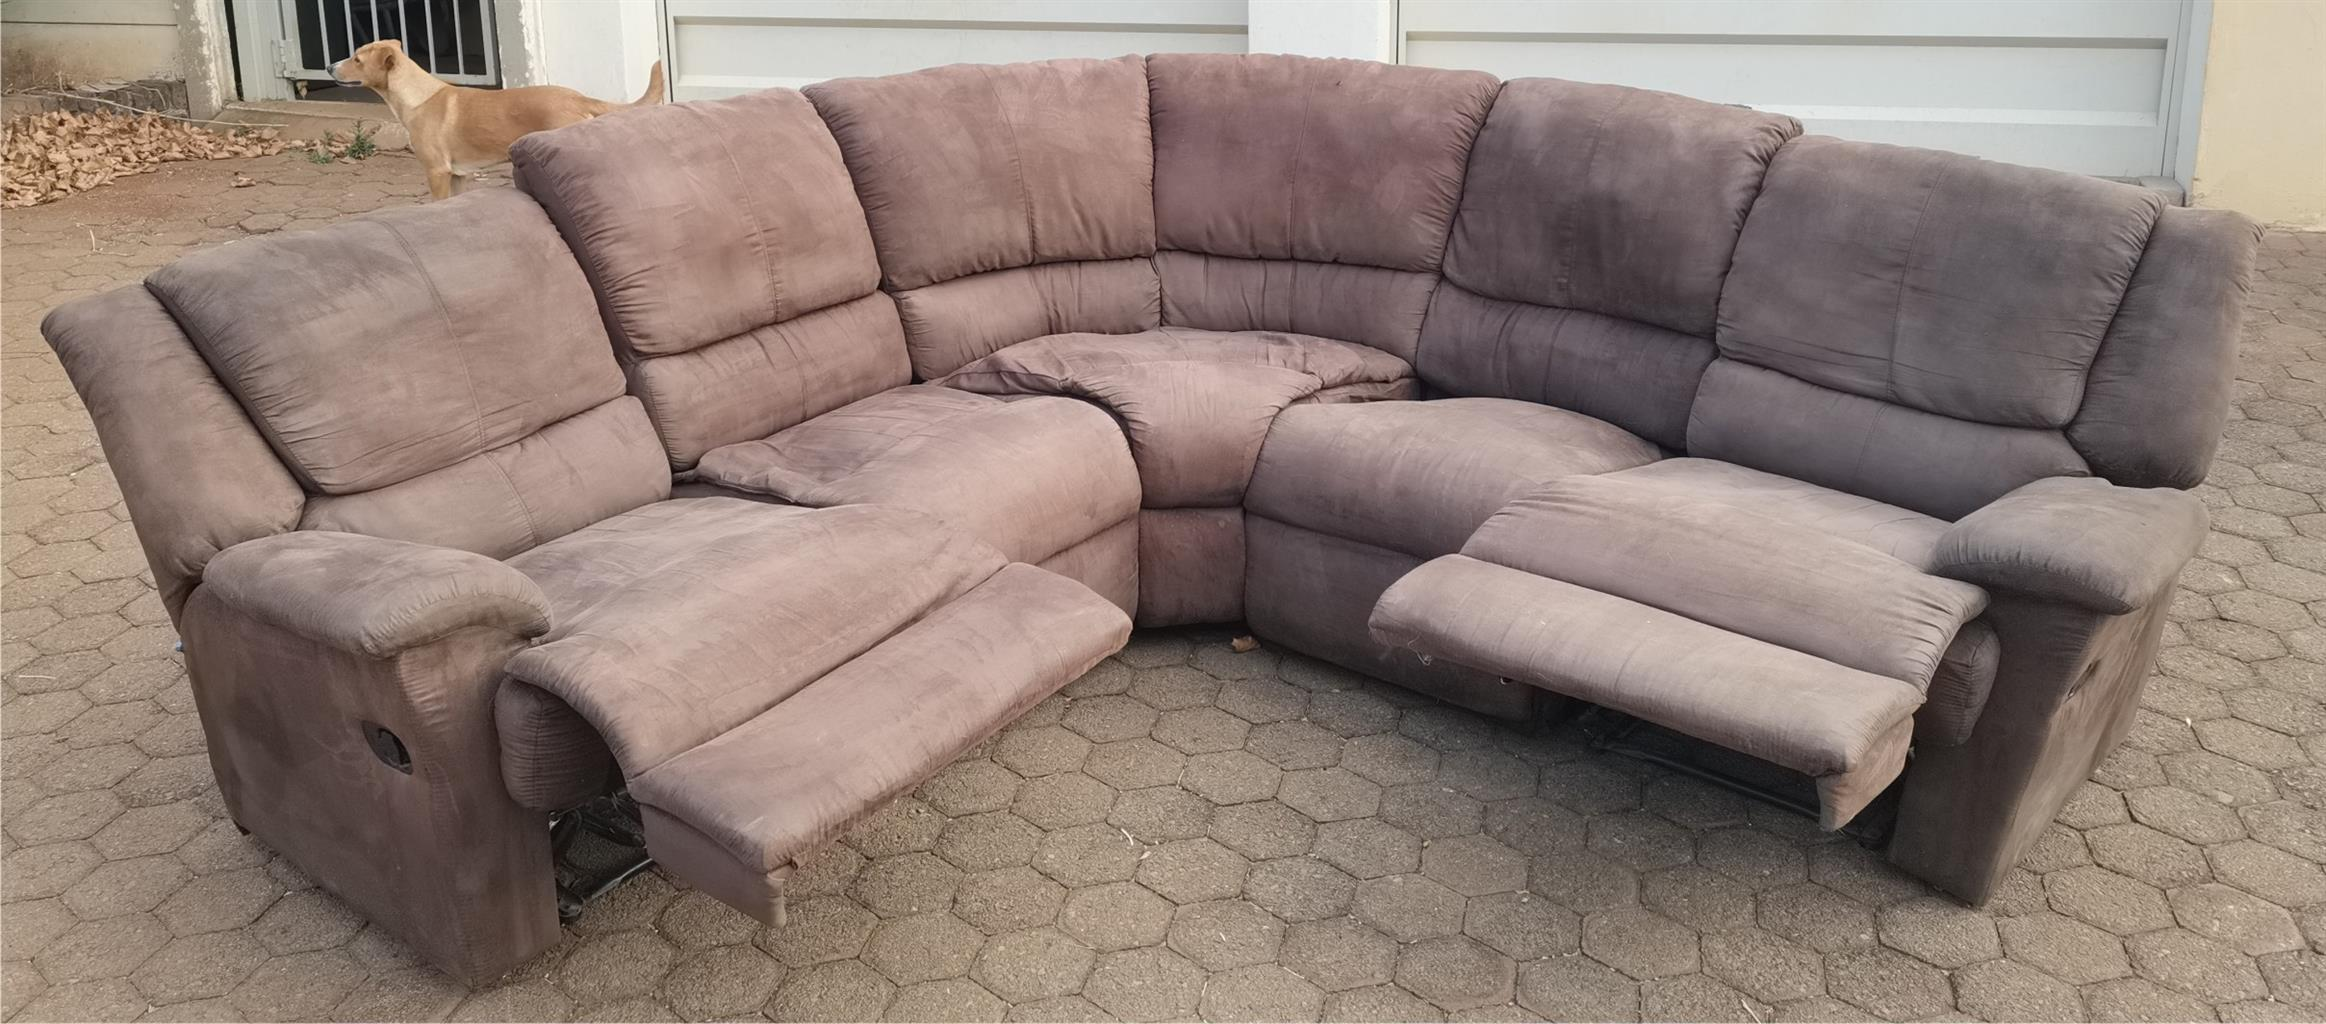 5 Seater Lazy Couch